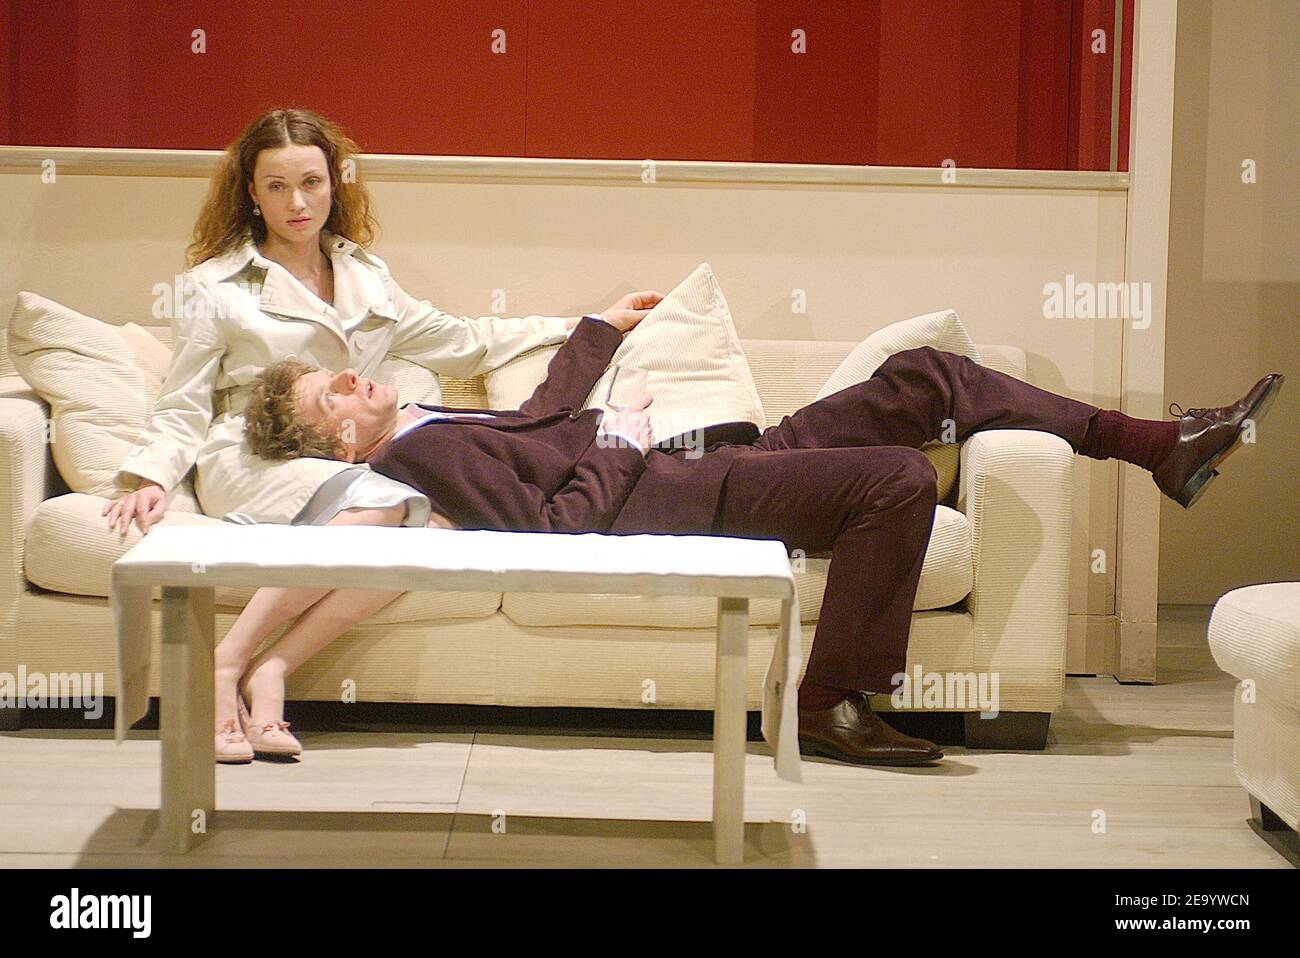 Marine Delterme and Nicolas Briancon perform in the play 'Le Manege' at Petit Theatre Montparnasse in Paris, France, on January 25, 2005. Photo by Giancarlo Gorassini/ABACA. Stock Photo